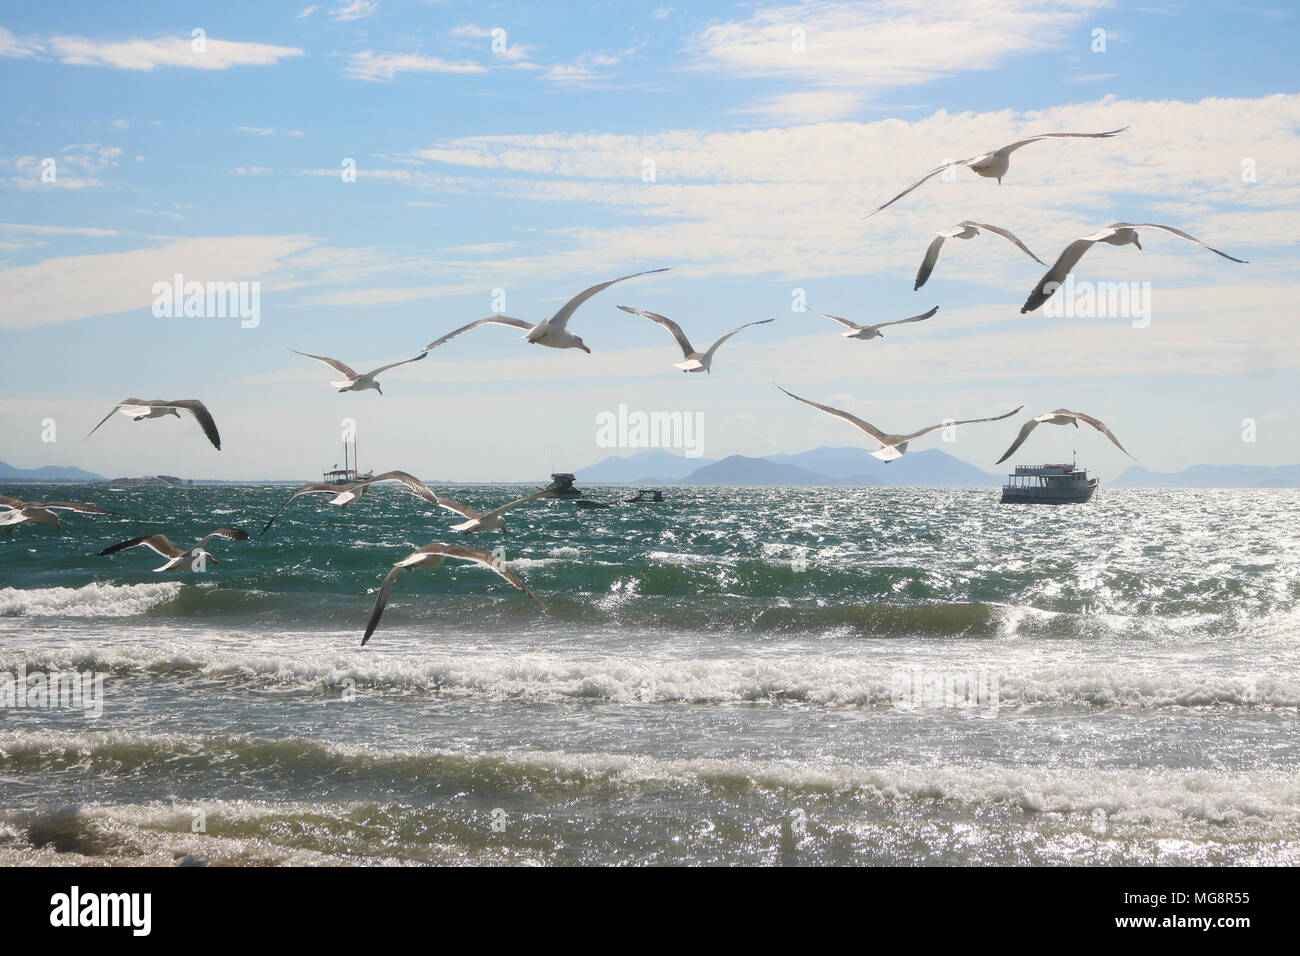 A flock of seagulls on the beach. A flight over the sea and over the boats. The certainty of not having destiny and a light life. harmony, beauty . - Stock Image